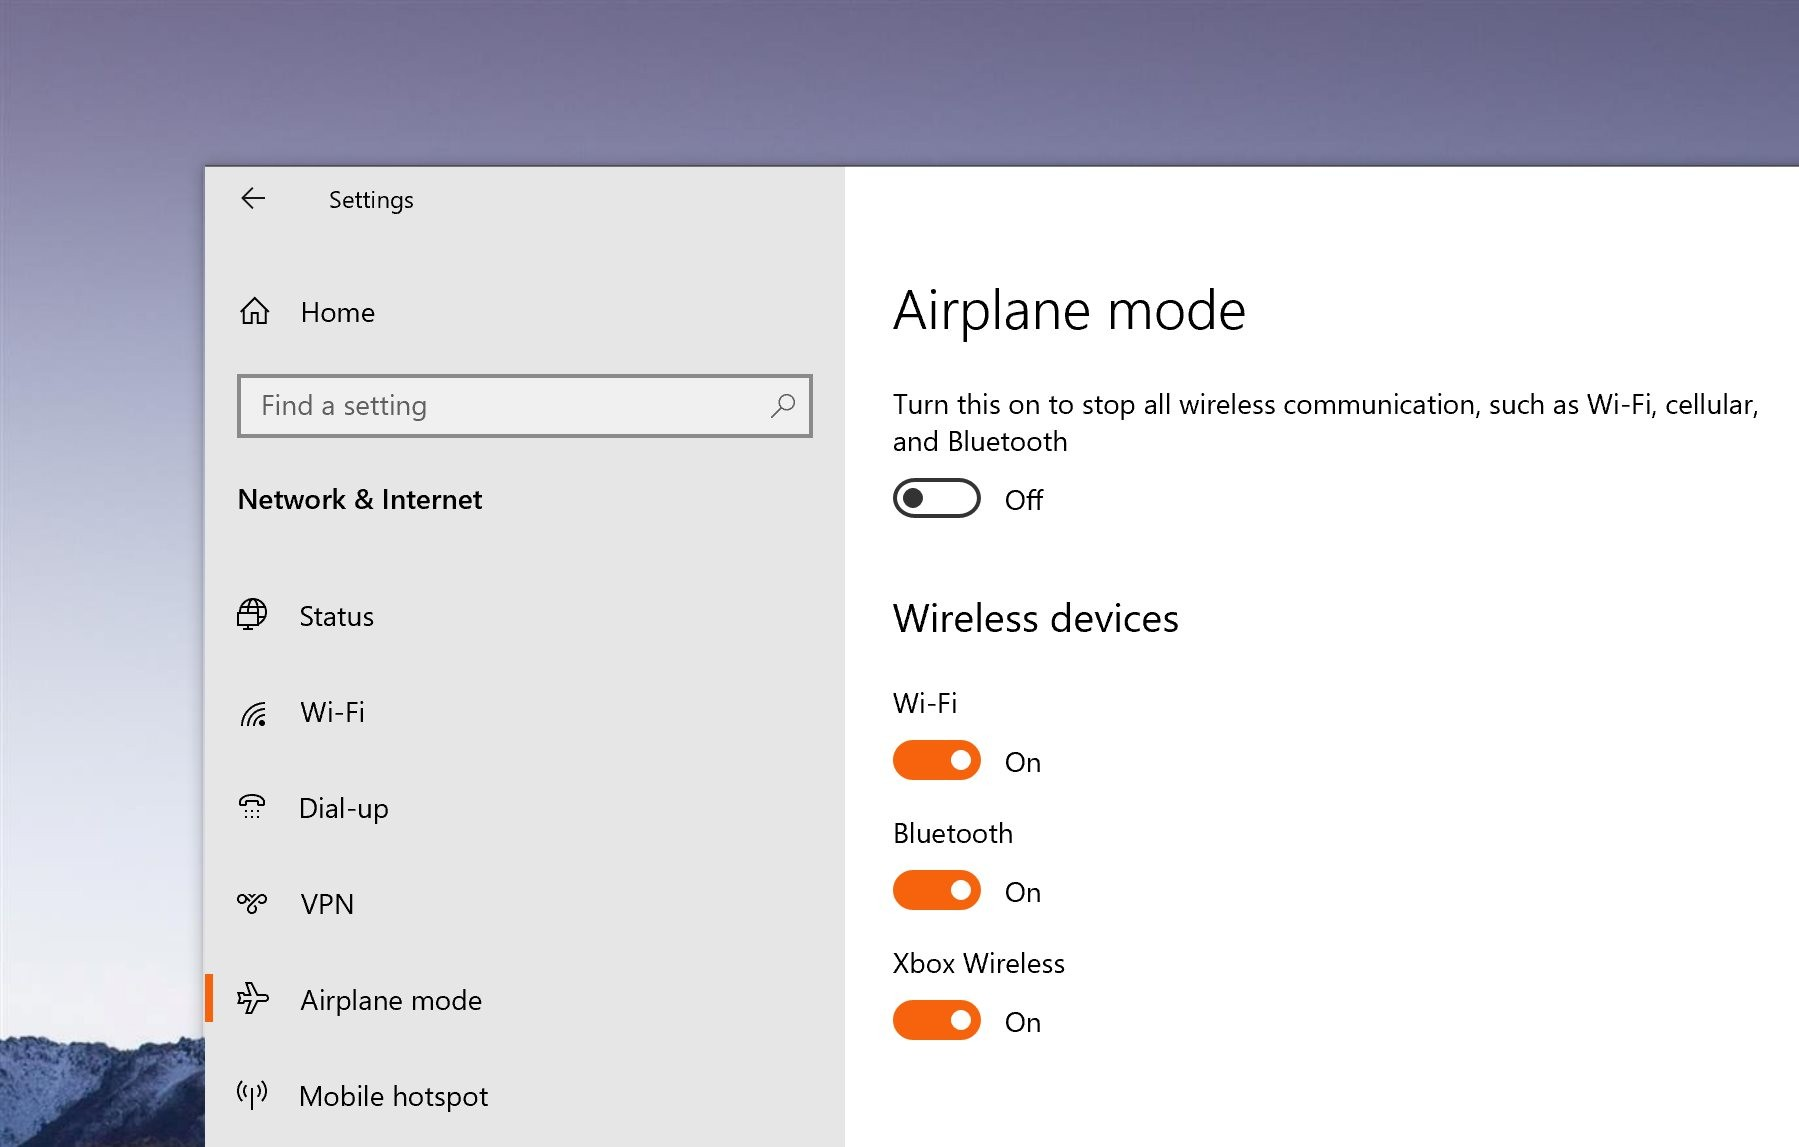 Windows 10 Wireless Display is Now Optional and Not Available by Default